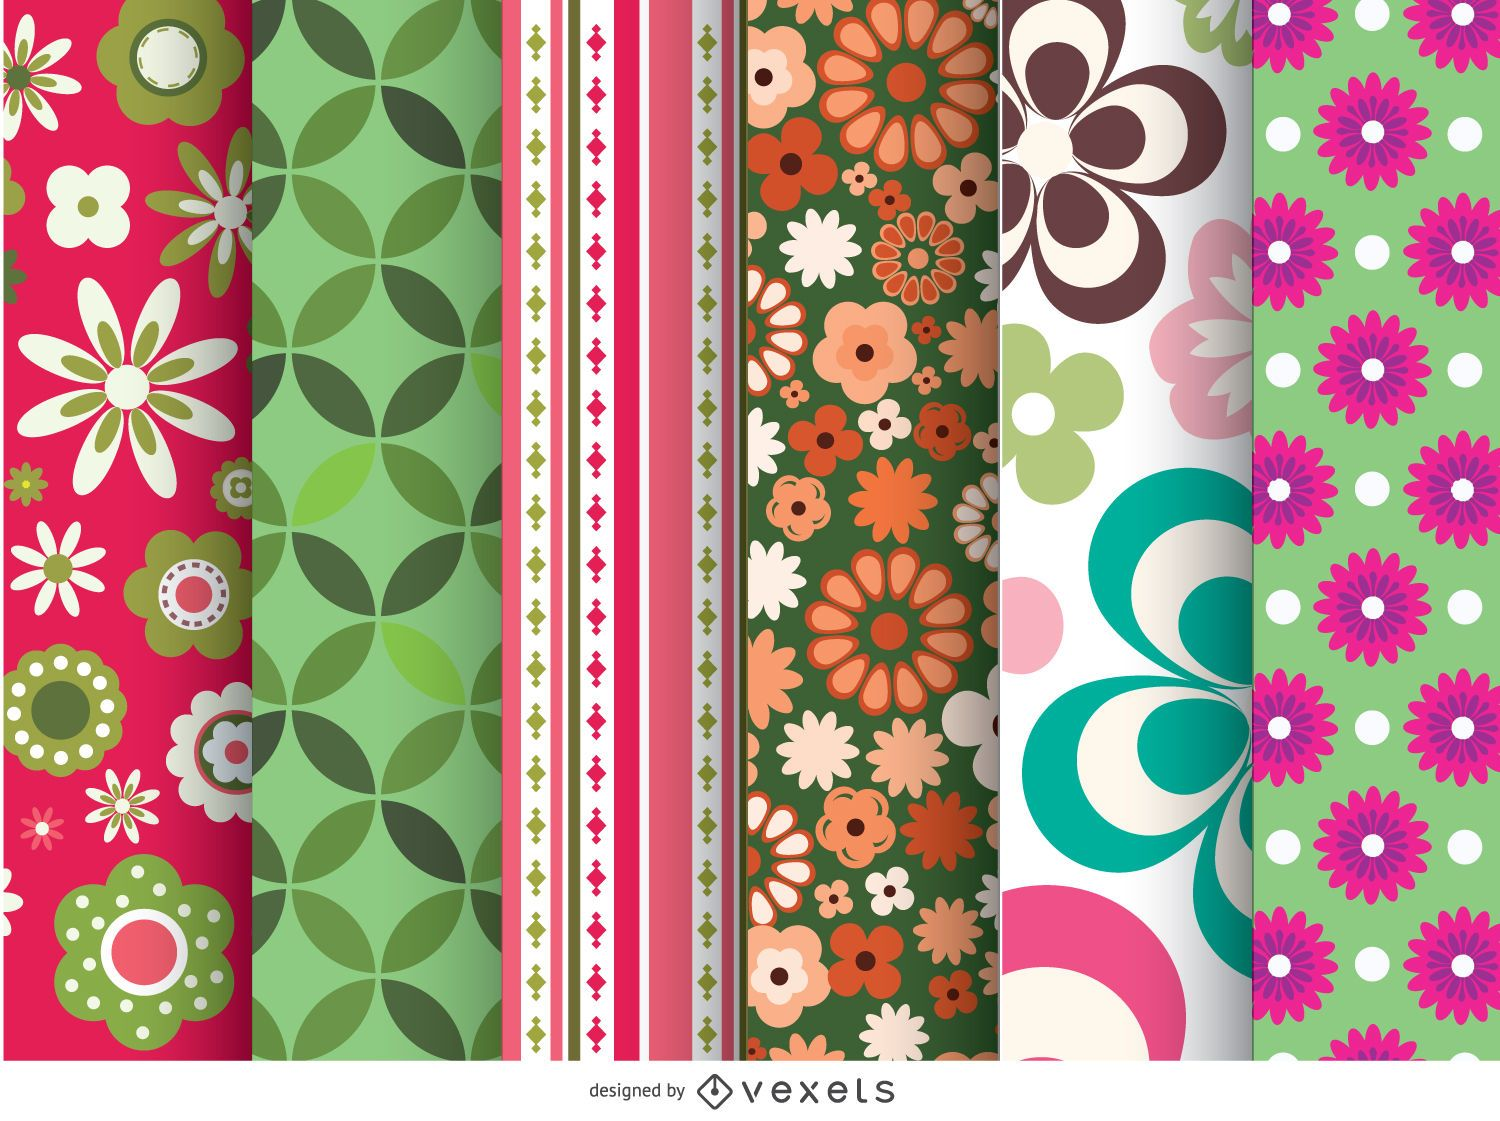 6 beautiful Floral Patterns